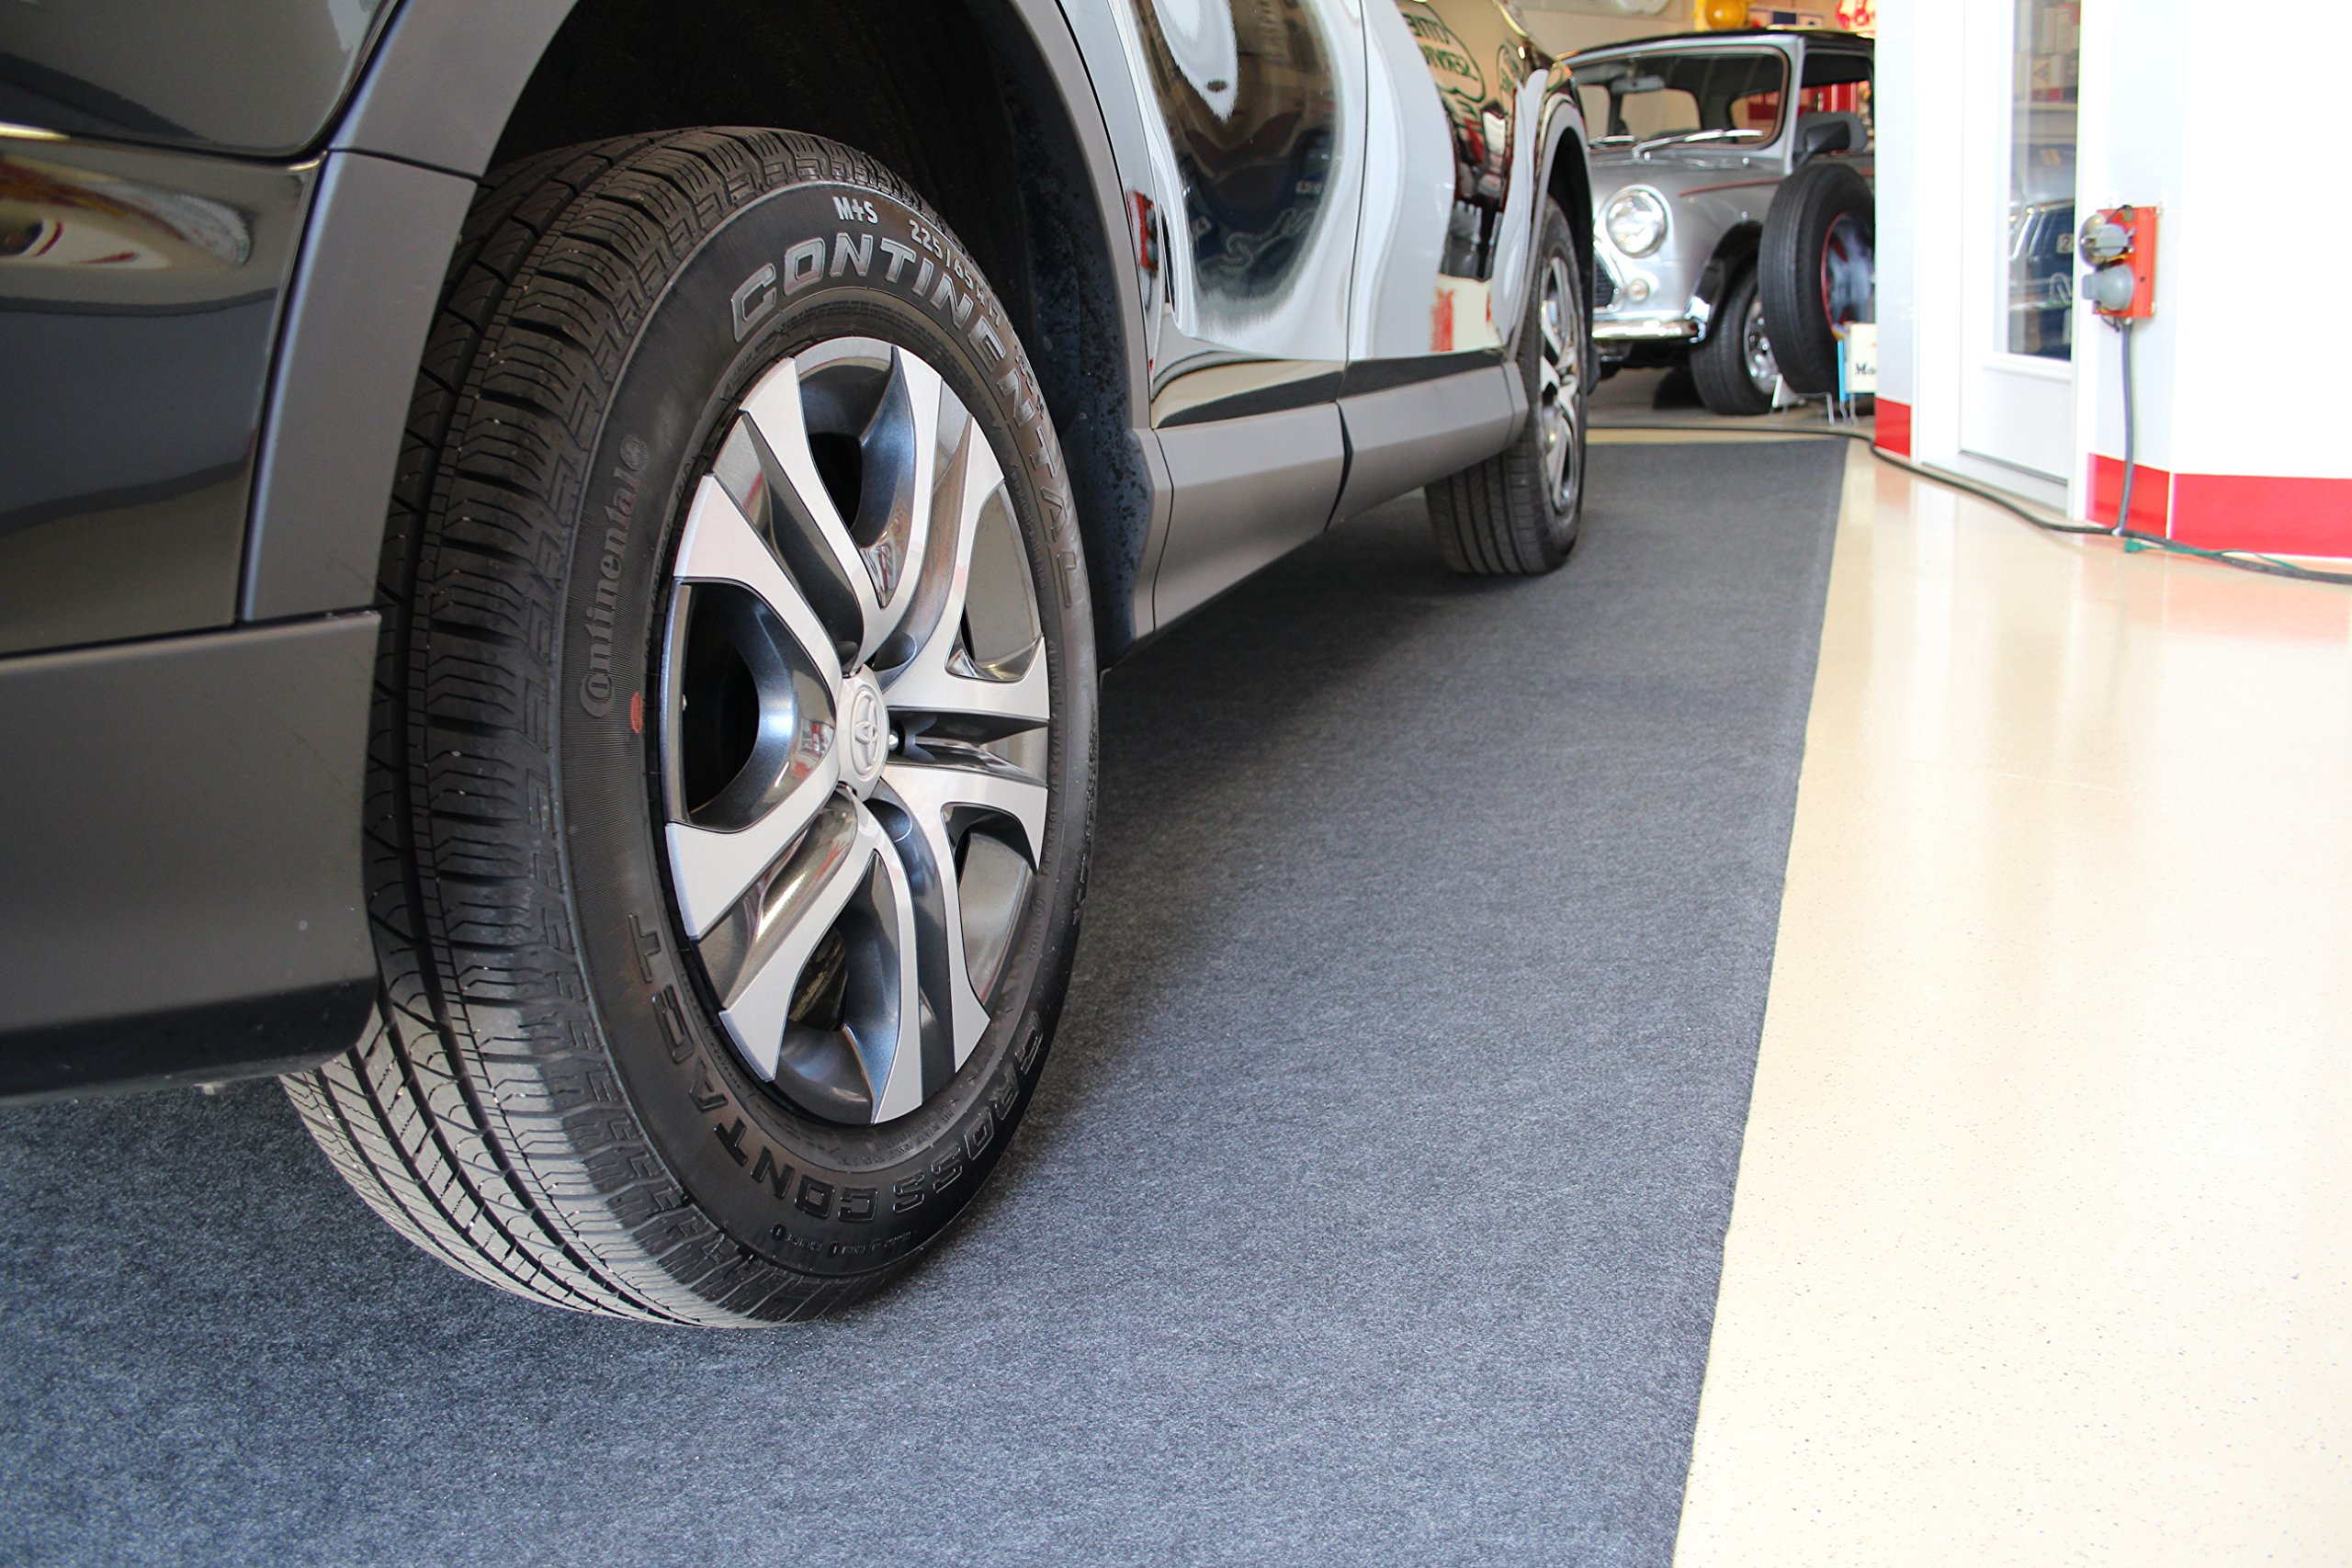 Armor All AAGFMC22 Garage Floor Mat 22' x 8'10'' (X-Large Charcoal) by Armor All (Image #4)